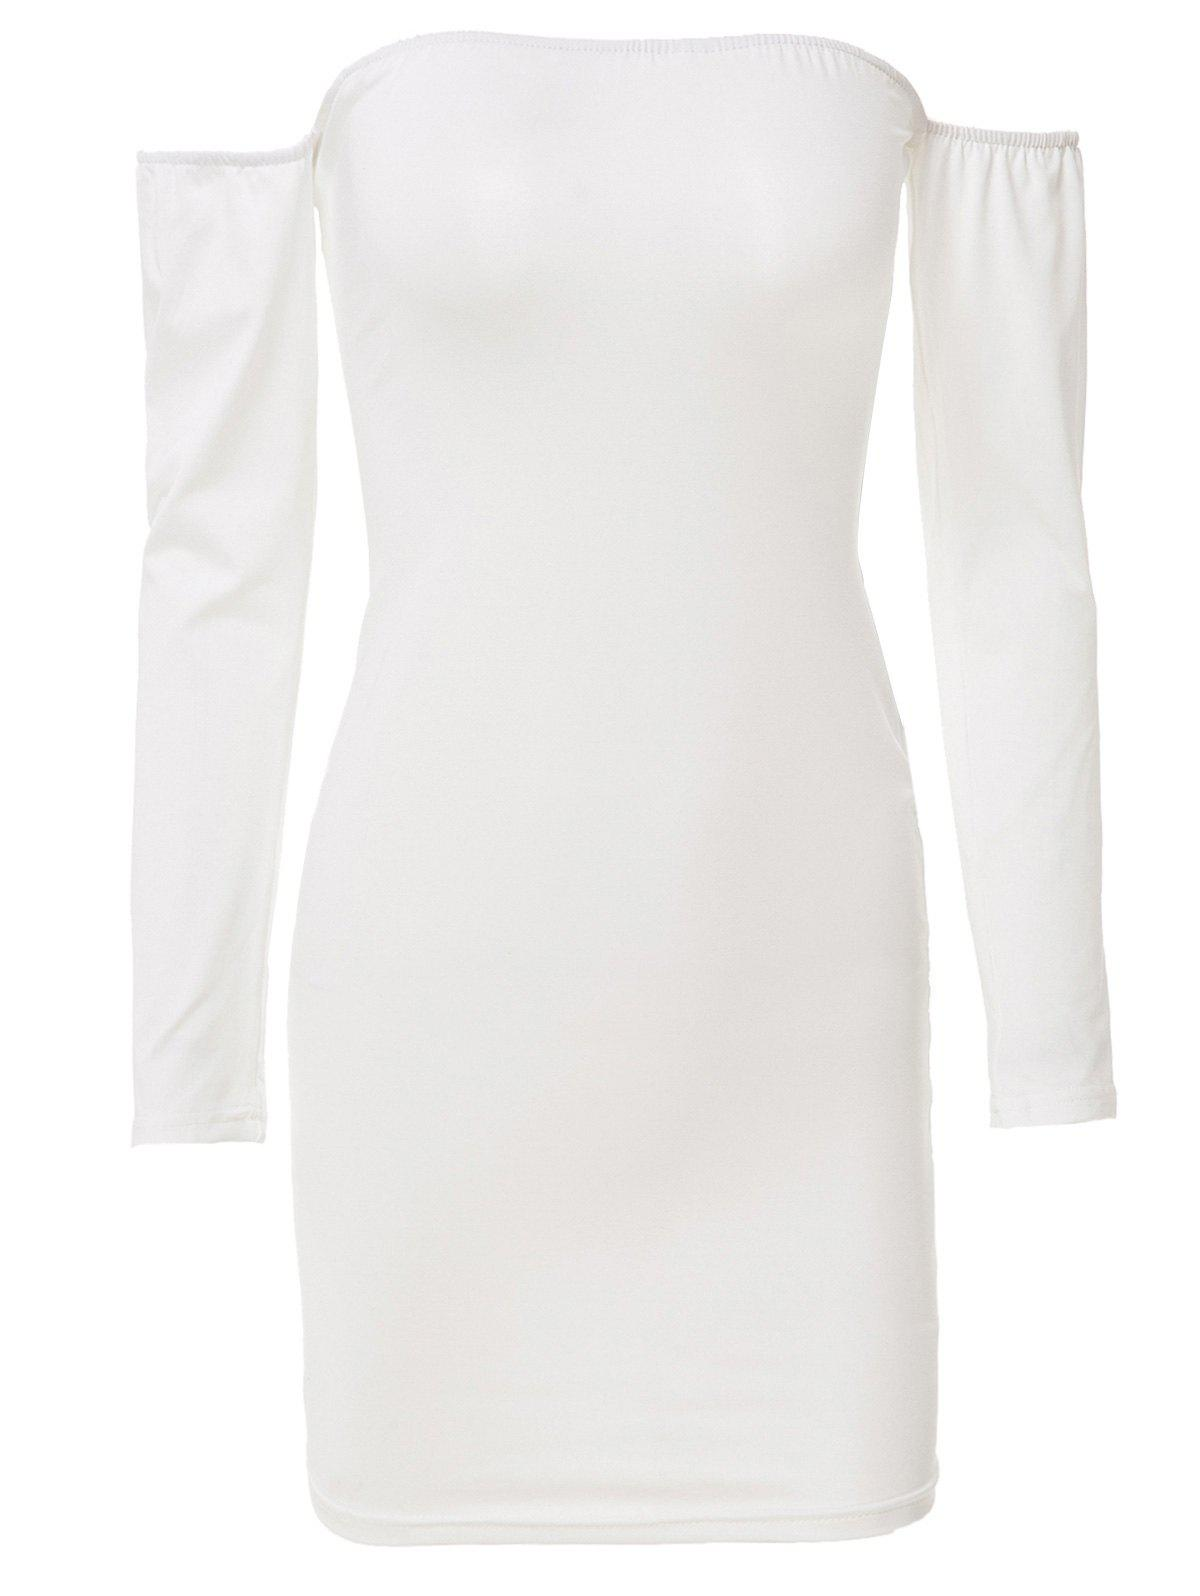 Stuning Off-The-Shoulder Long Sleeve Solid Color Bodycon Women's Dress - WHITE ONE SIZE(FIT SIZE XS TO M)